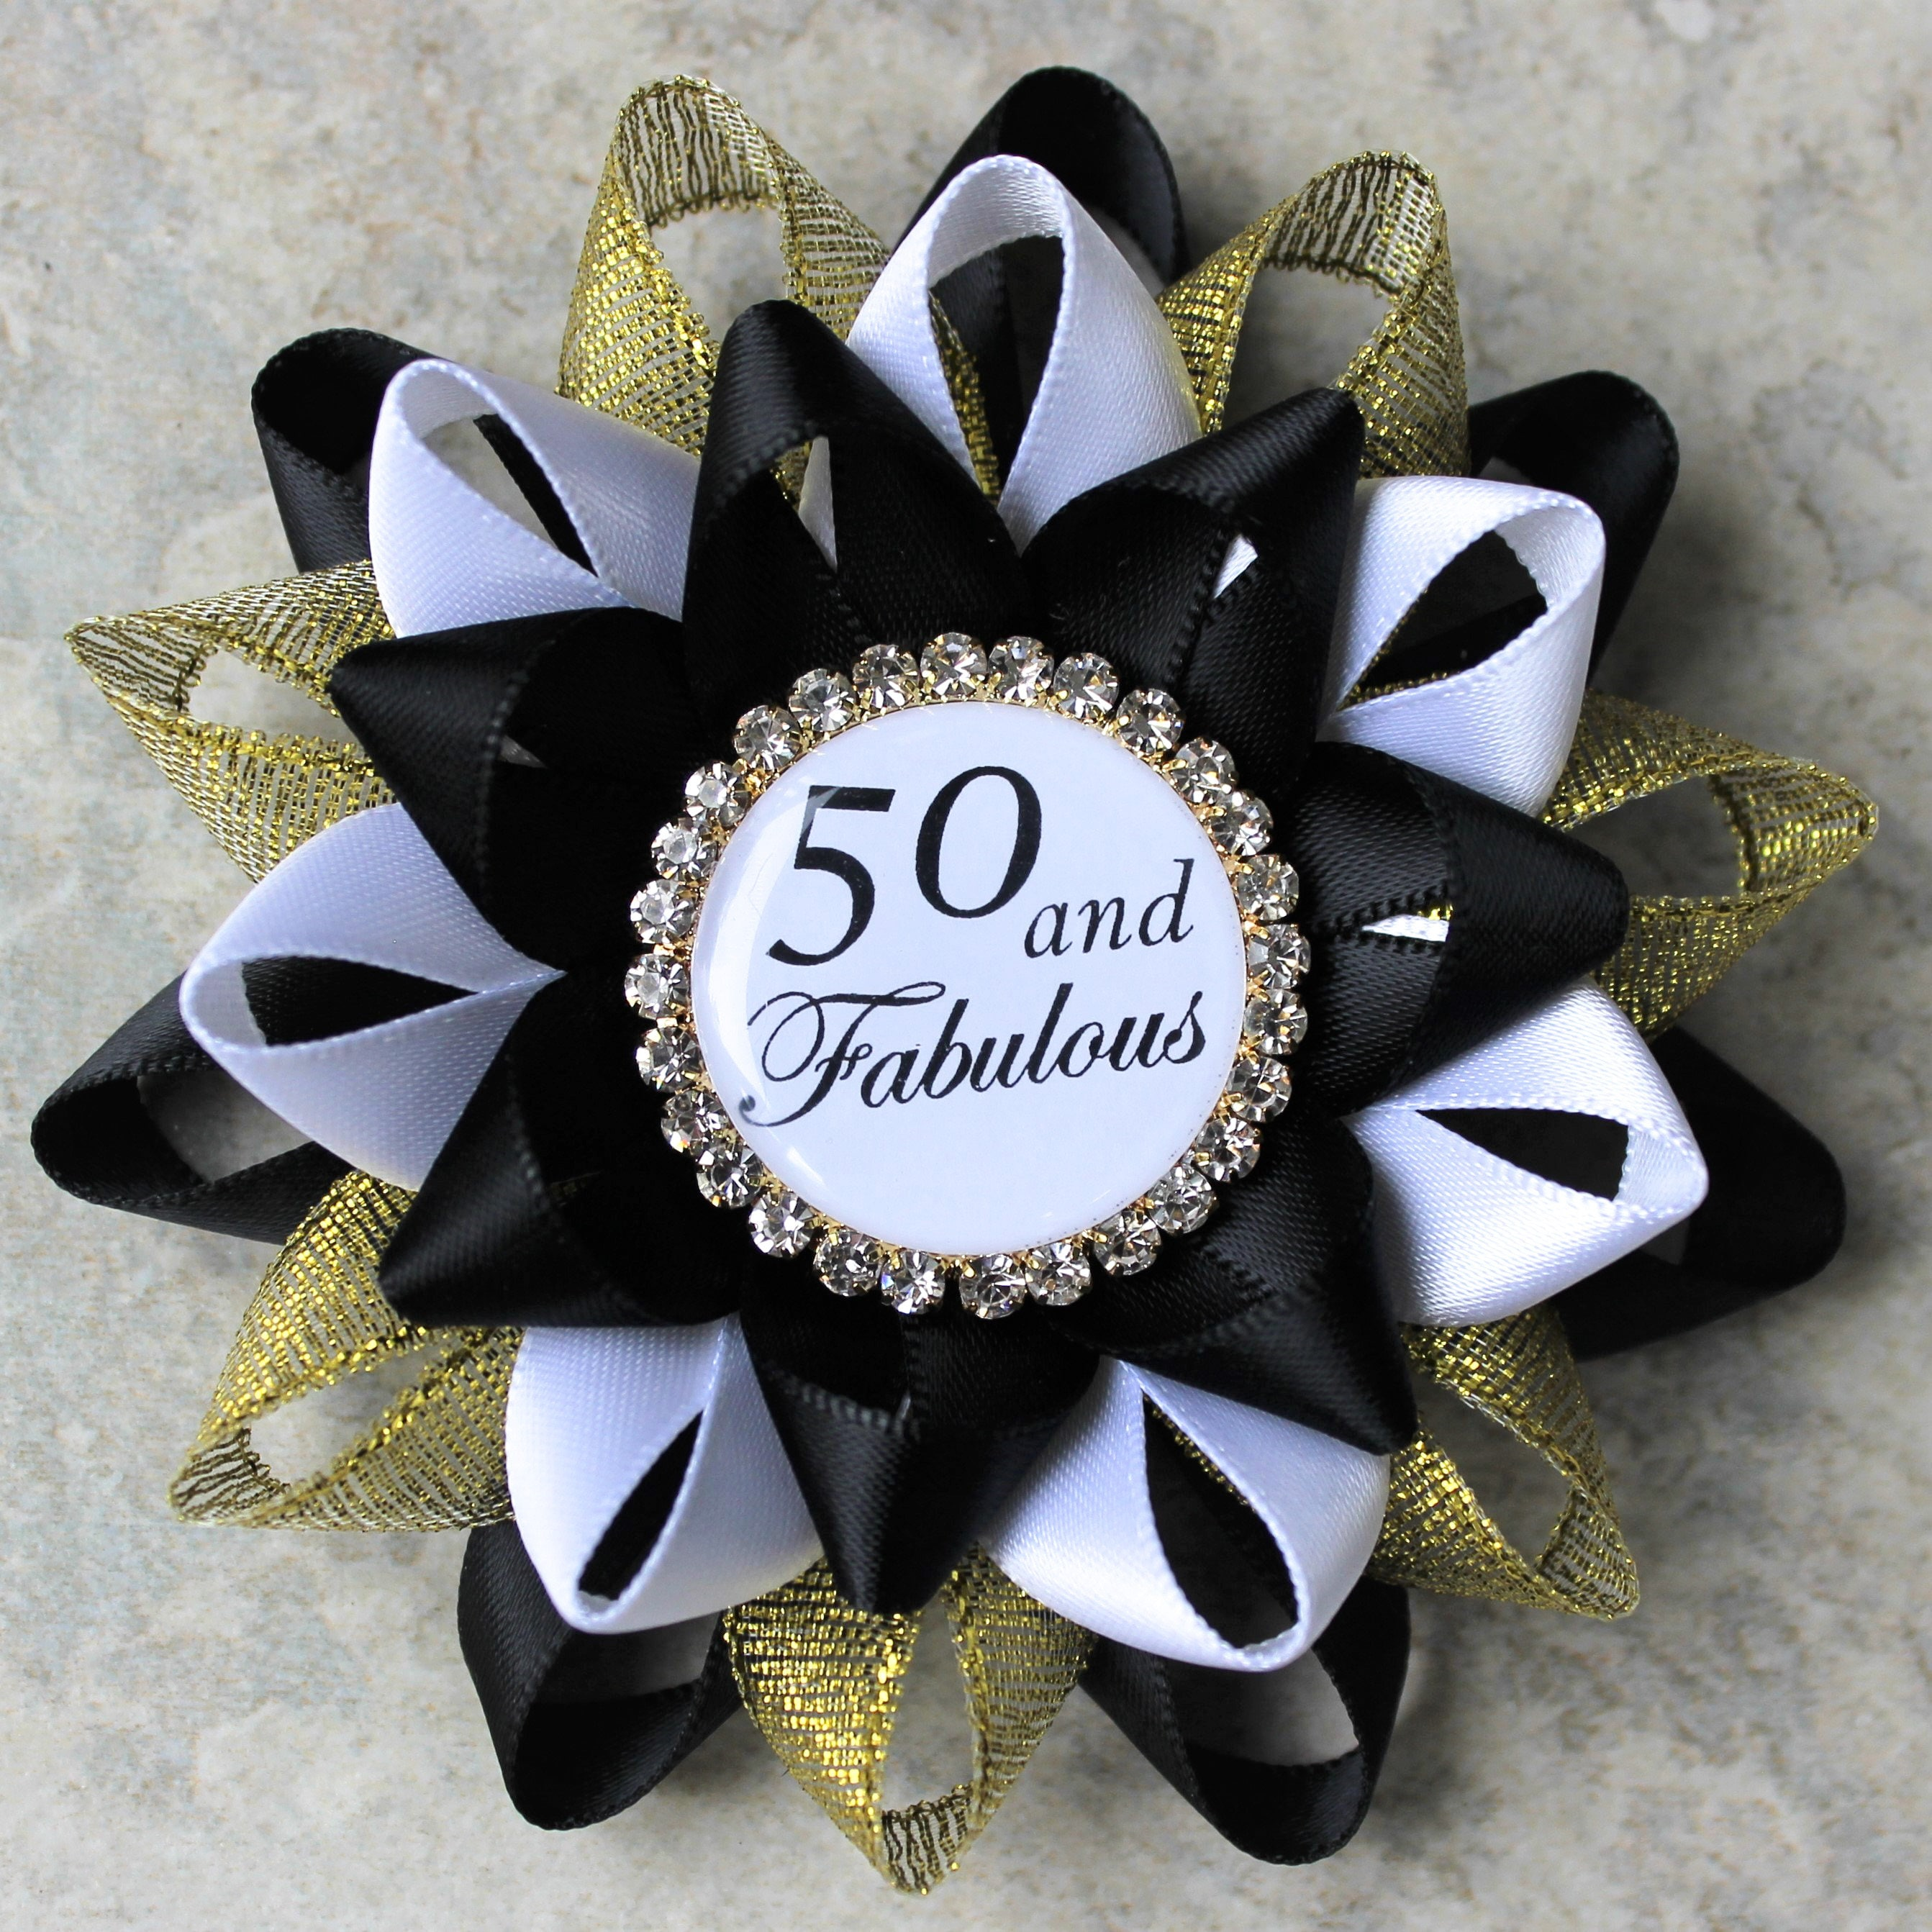 50th Birthday Pin 50 And Fabulous Party Decorations Fiftieth Gift For Women Black Gold White